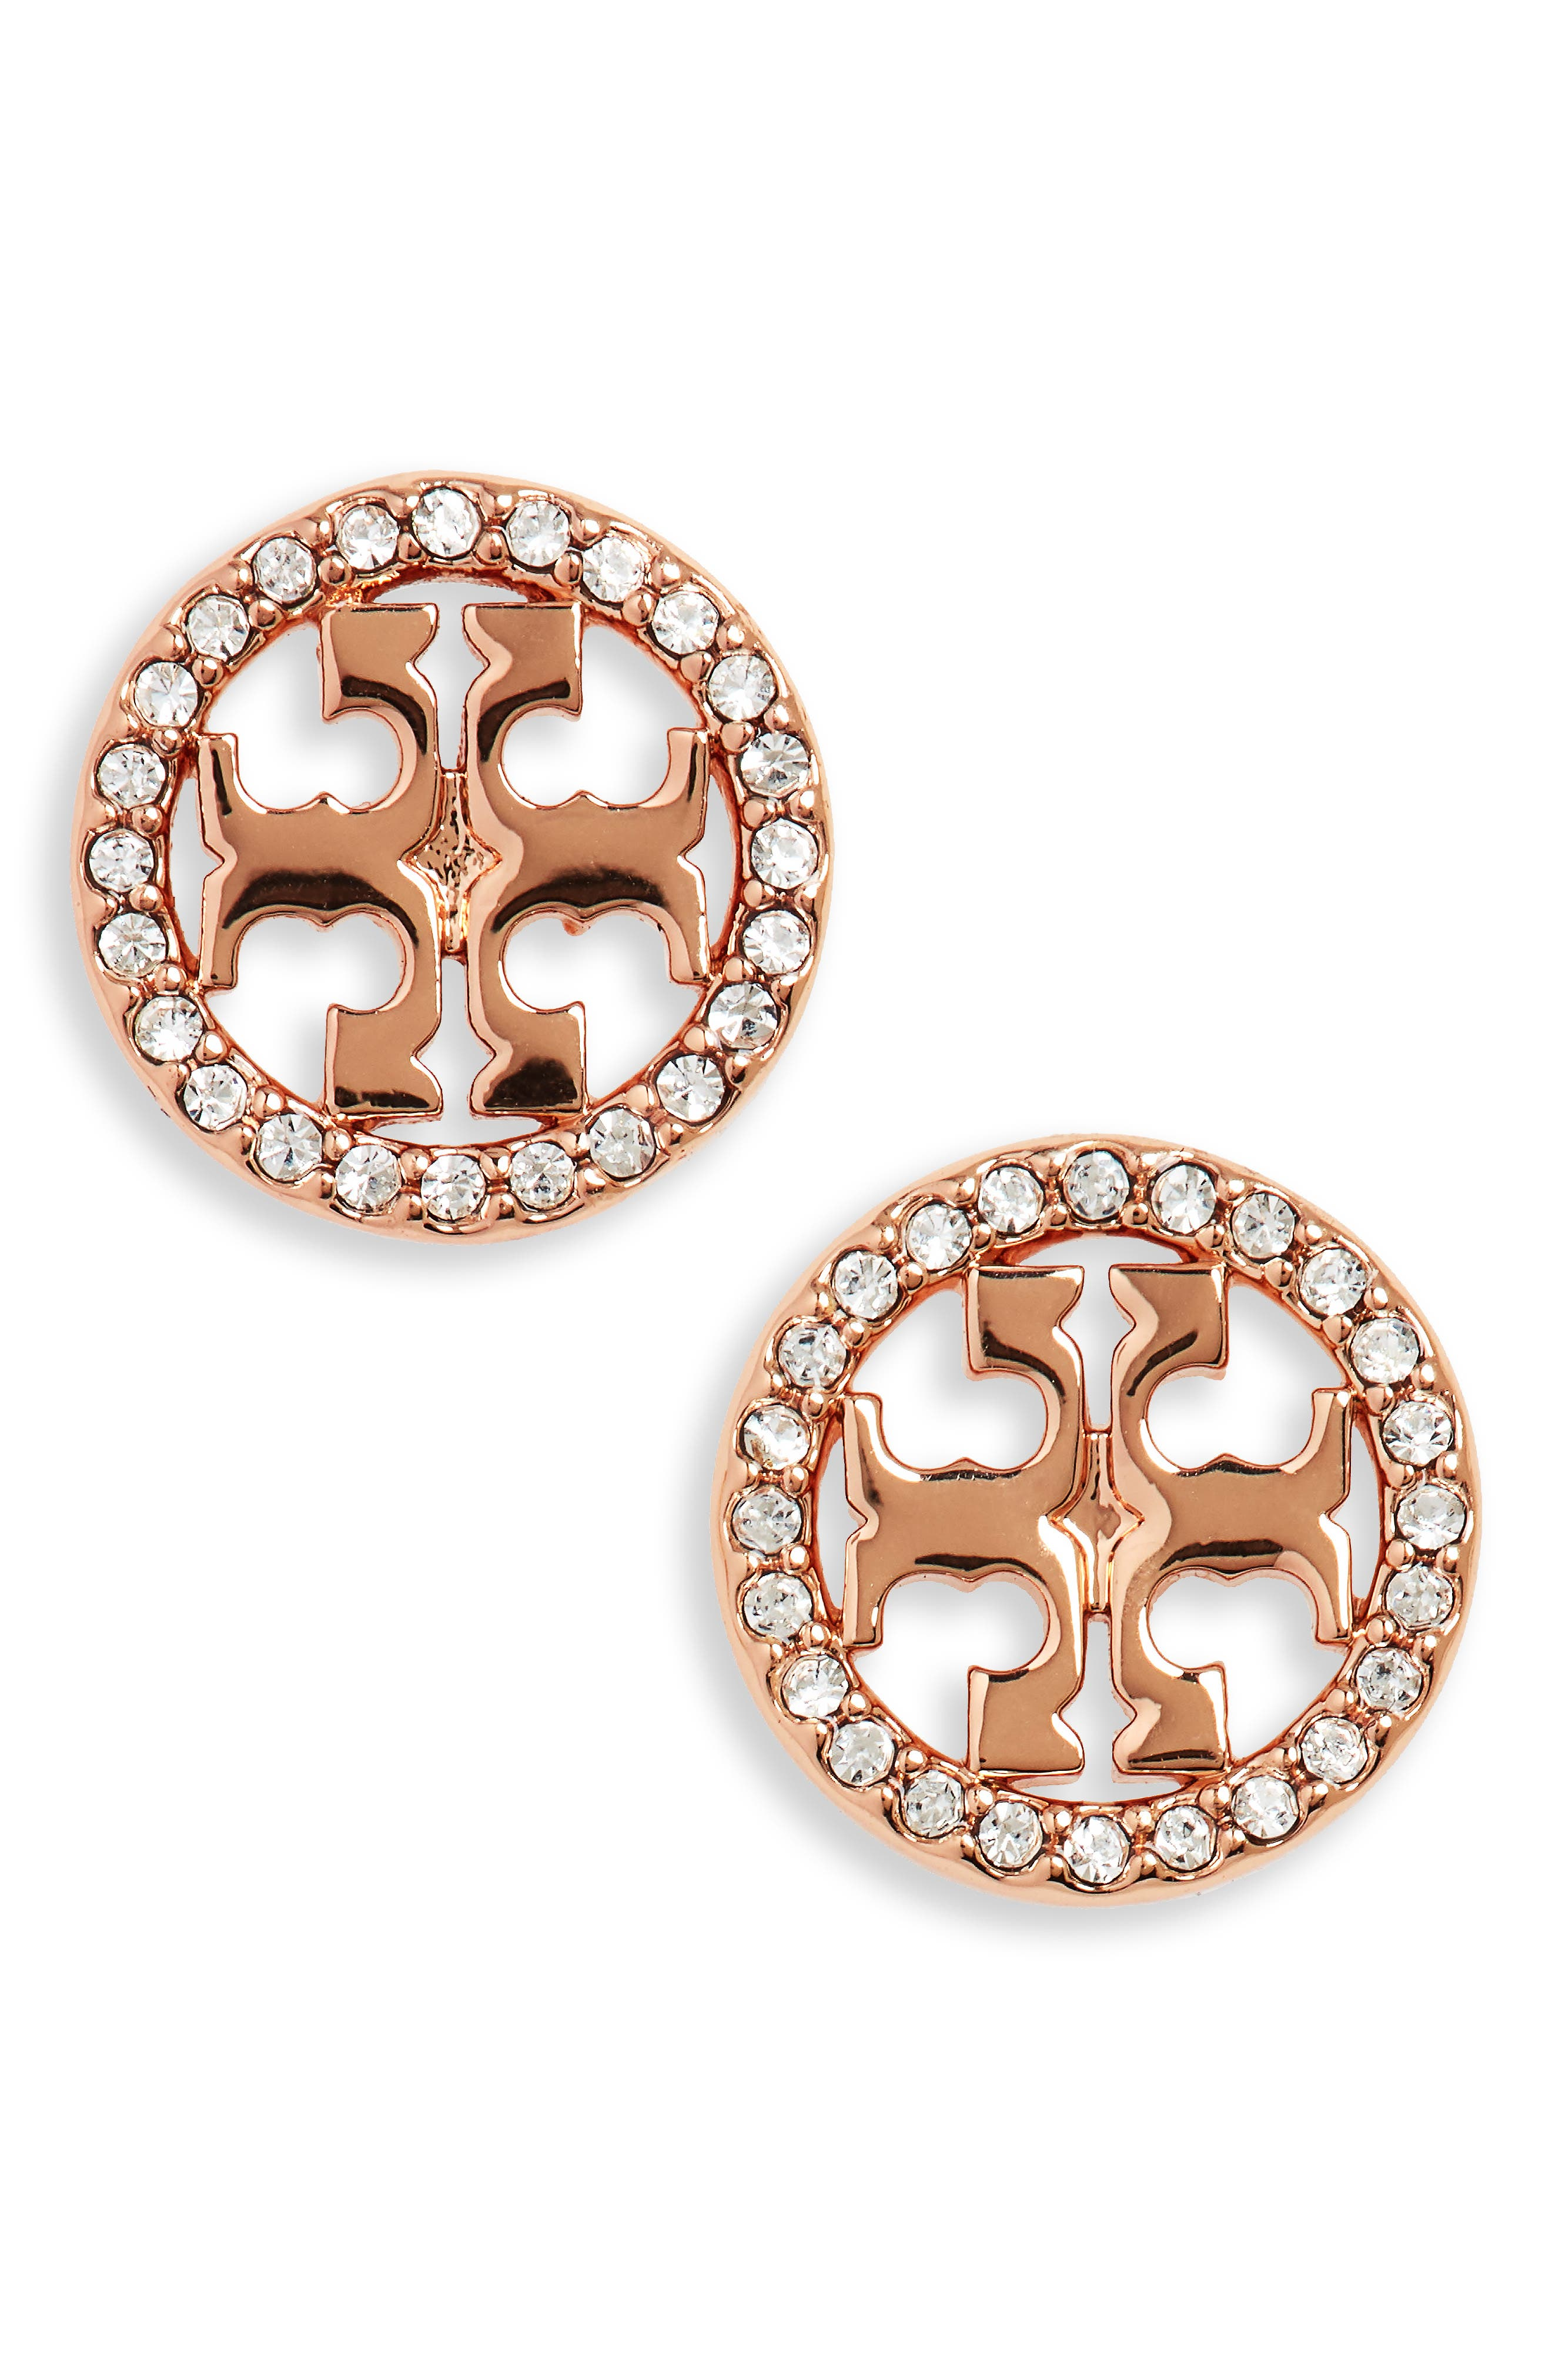 TORY BURCH, Crystal Logo Circle Stud Earrings, Main thumbnail 1, color, ROSE GOLD/ CRYSTAL